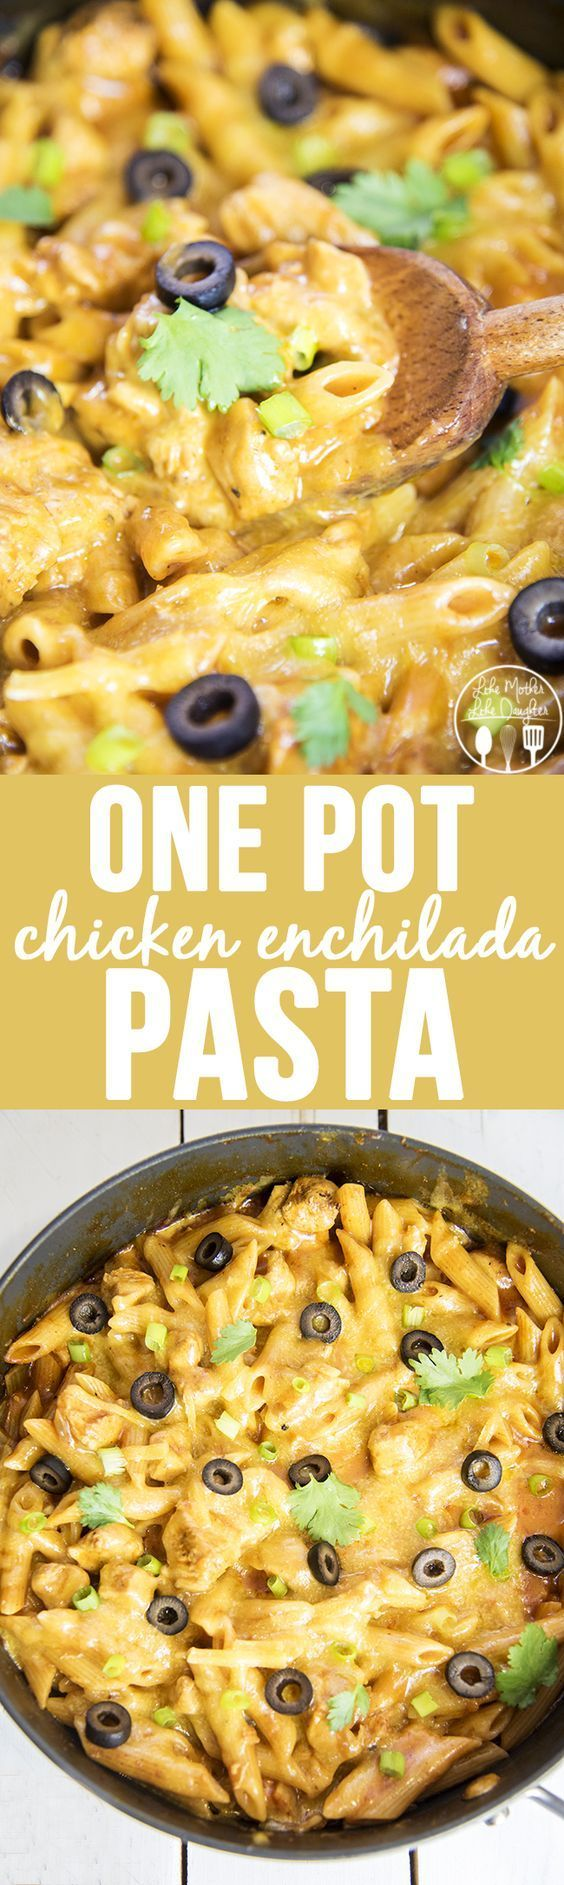 One Pot Chicken Enchilada Pasta Recipe - only 25 minutes to make! | Like Mother, Like Daughter - The Best Easy One Pot Pasta Family Dinner Recipes #onepotpasta #onepotmeals #pastarecipes #onepotpastarecipes #onepotrecipes #mealprep #pasta #simplefamilymeals #simplefamilyrecipes #simplerecipes